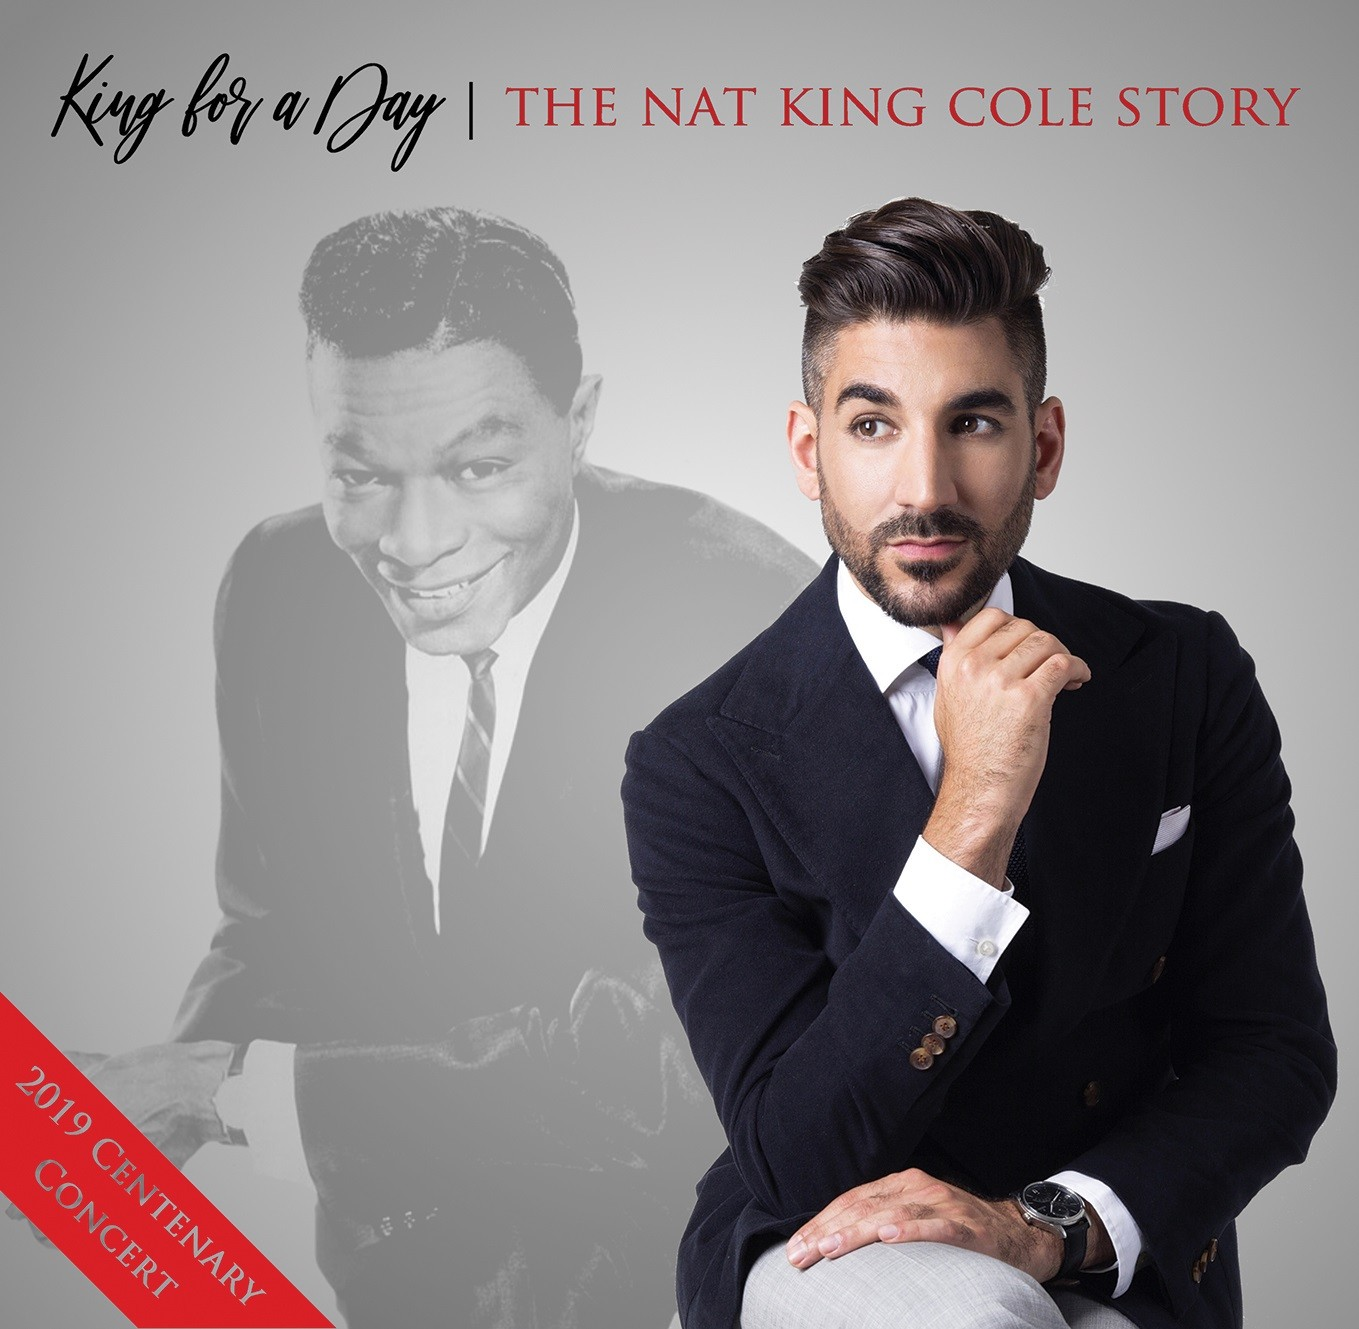 Nat King Cole Story - King for a Day